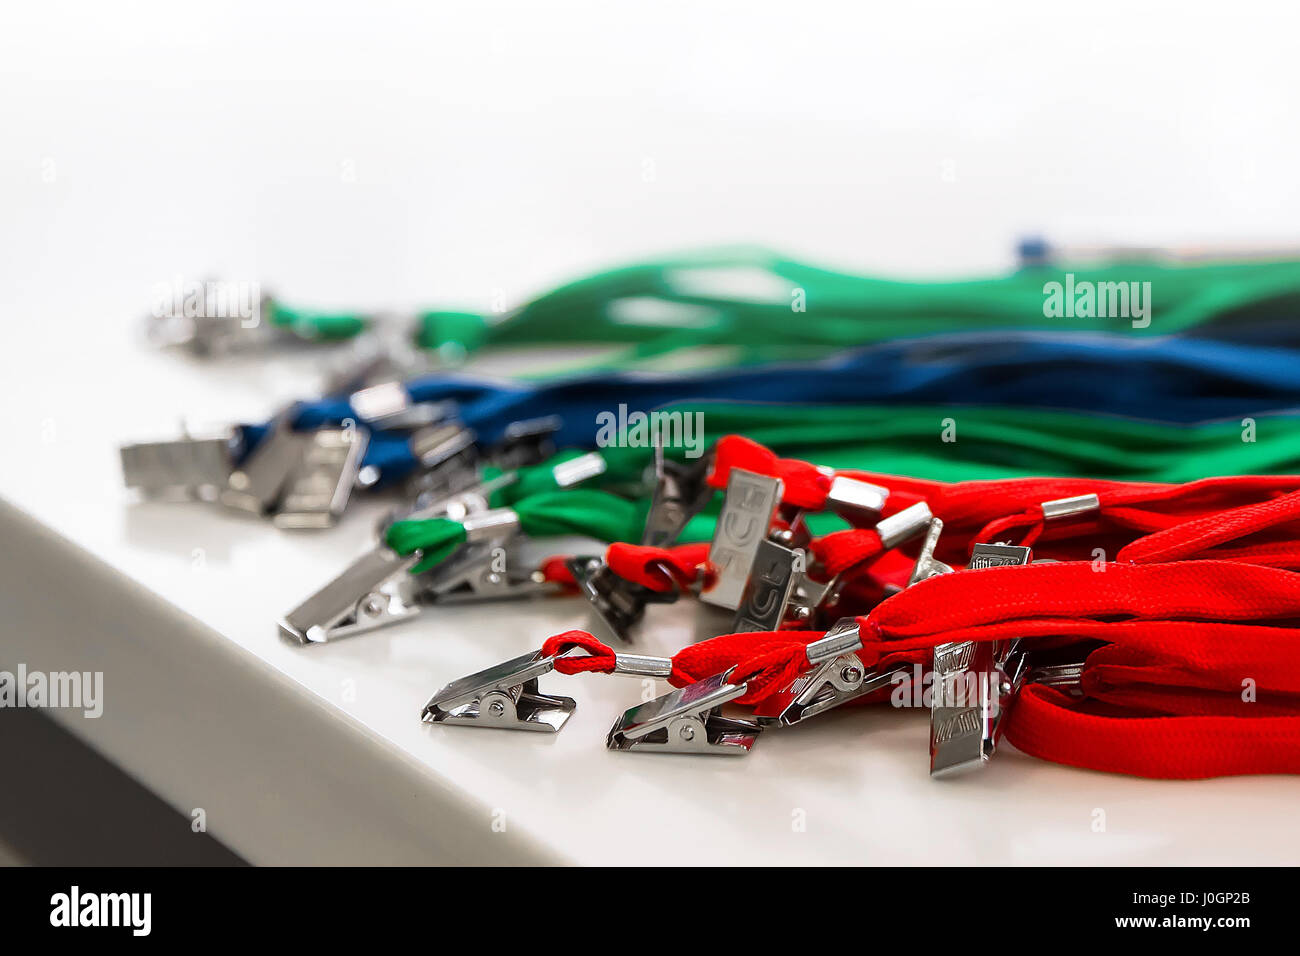 Colored lanyard for id cards and badges on white background - Stock Image